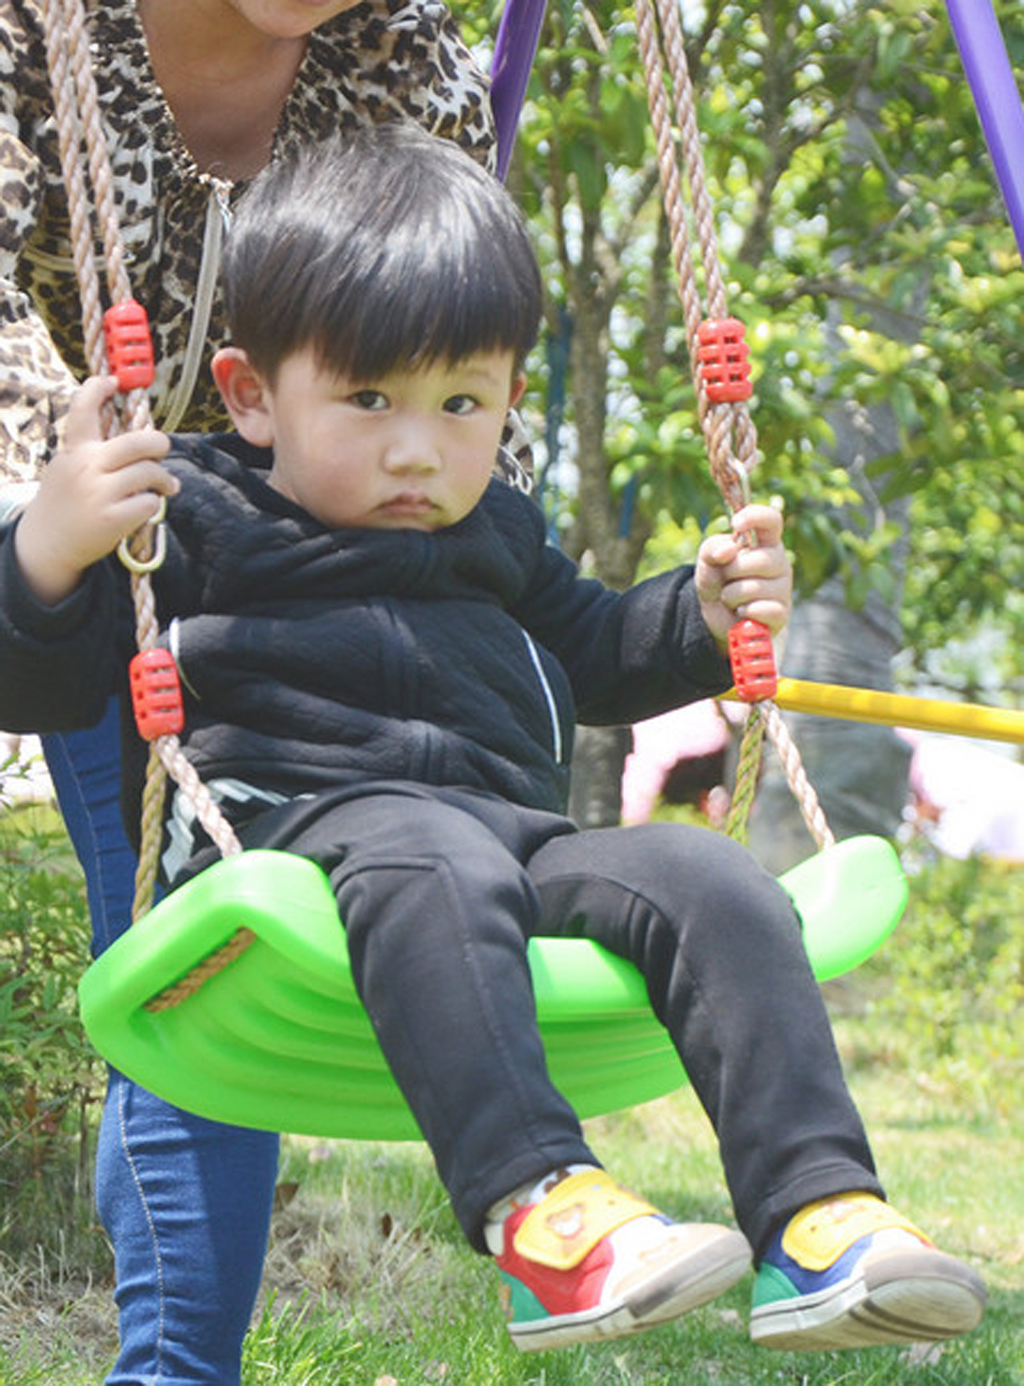 Various-Swings-Accessories-Seat-Rope-Chain-Connector-Kids-Adult-Outdoor-Activity miniatuur 13